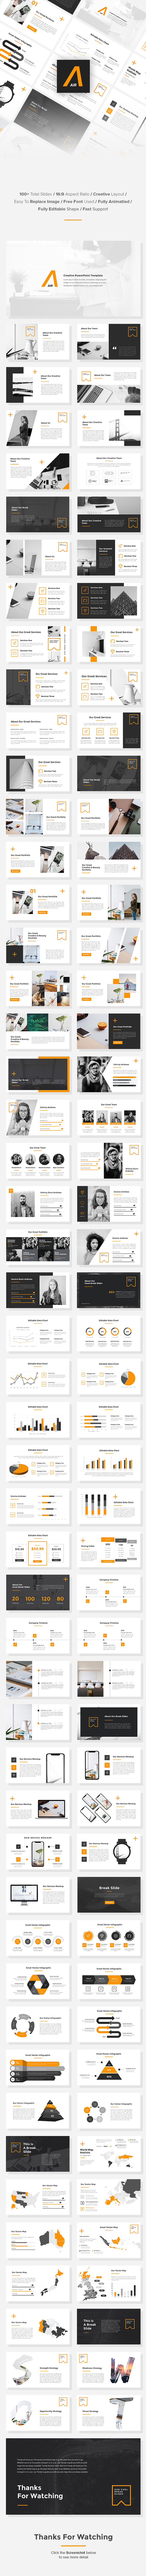 Air - Creative Keynote Template - Creative Keynote Templates